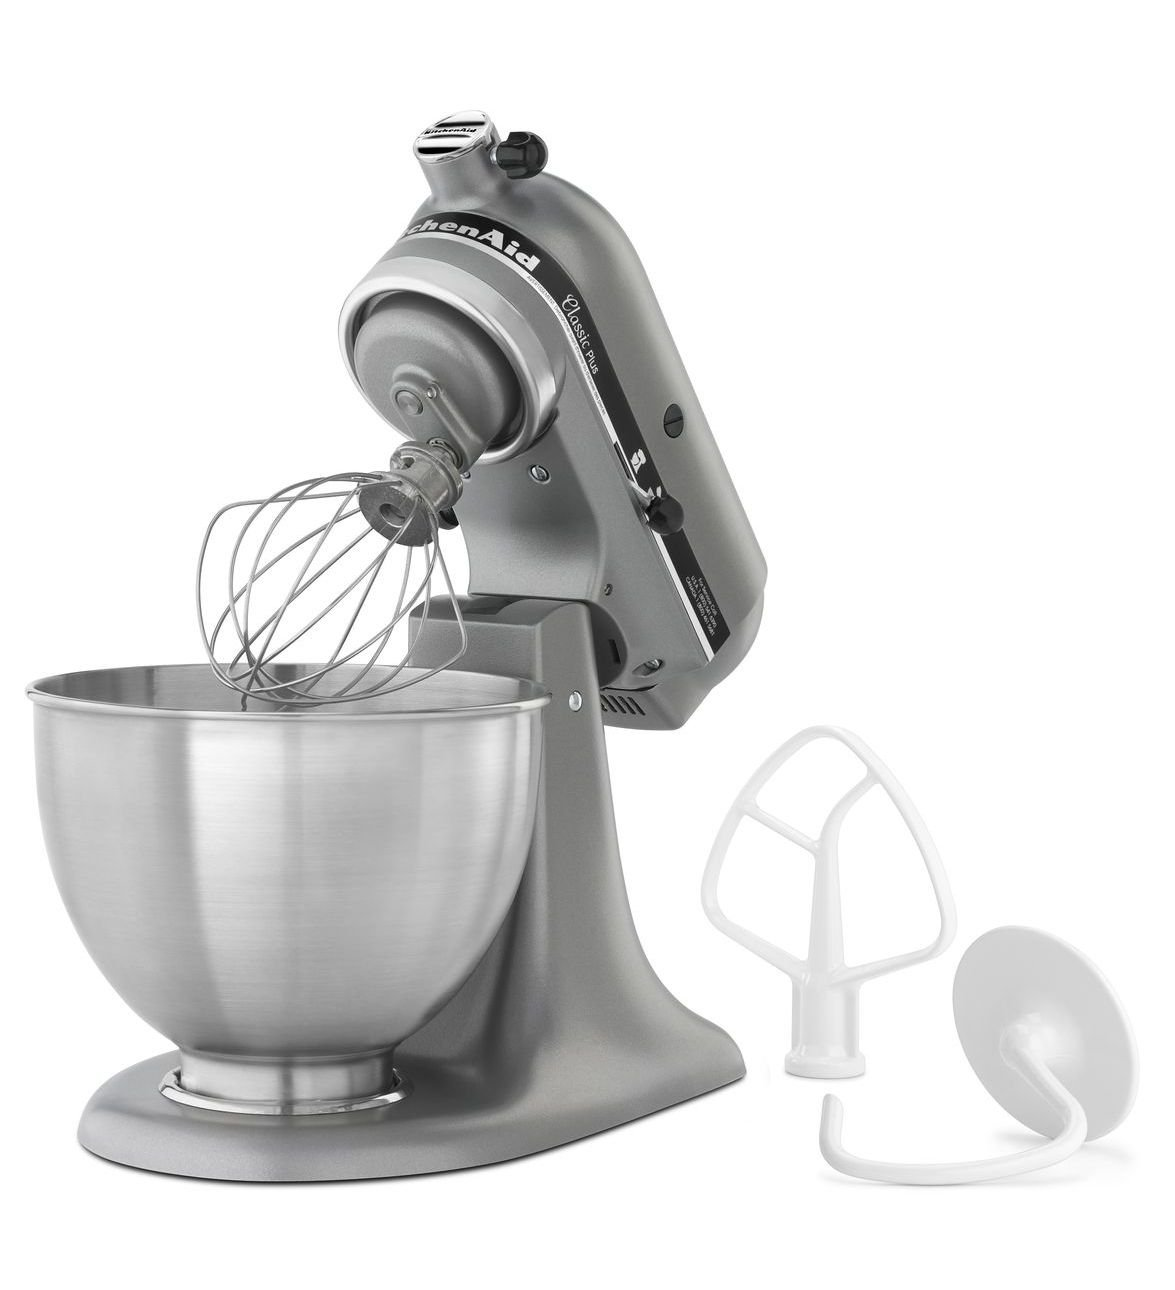 Amazon.com: Classic Series 4.5 Qt. Tilt Head Stand Mixer by ...